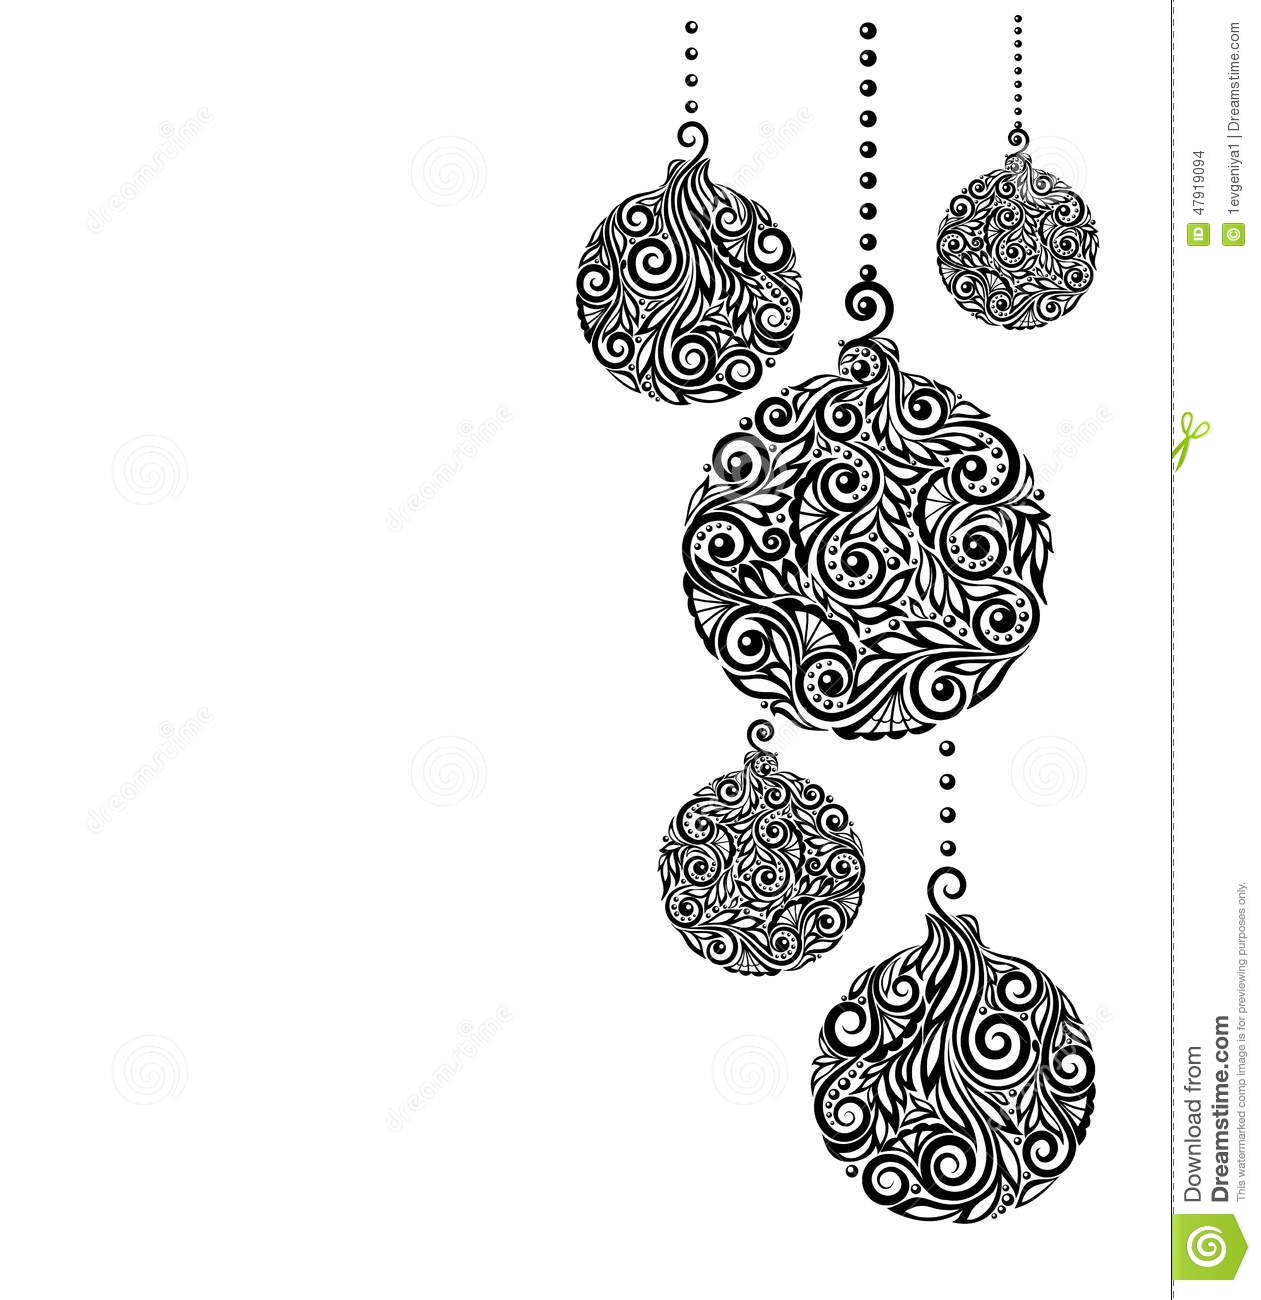 Stock Illustration Beautiful Monochrome Black White Christmas Background Christmas Balls Hanging Great Greeting Cards Image47919094 on new year card templates designs